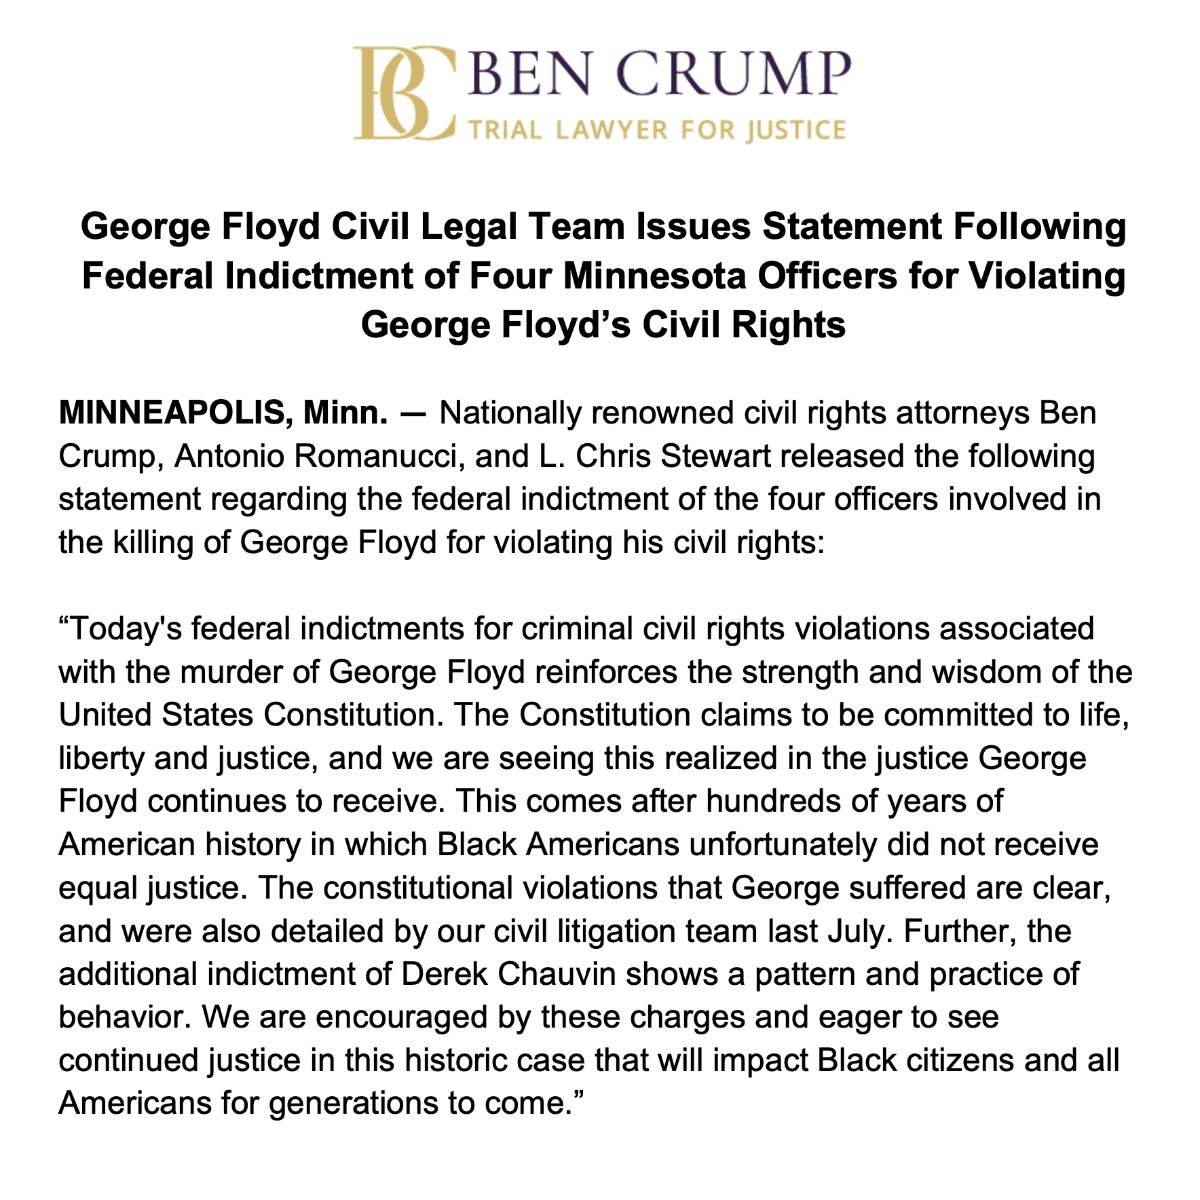 NEWS ALERT: @AttorneyCrump, @TonyRomanucci, and @LChrisStewart1 release a statement about the federal indictment of four Minnesota officers involved in the killing of George Floyd for violating his civil rights. https://t.co/4wEnwvIqOX